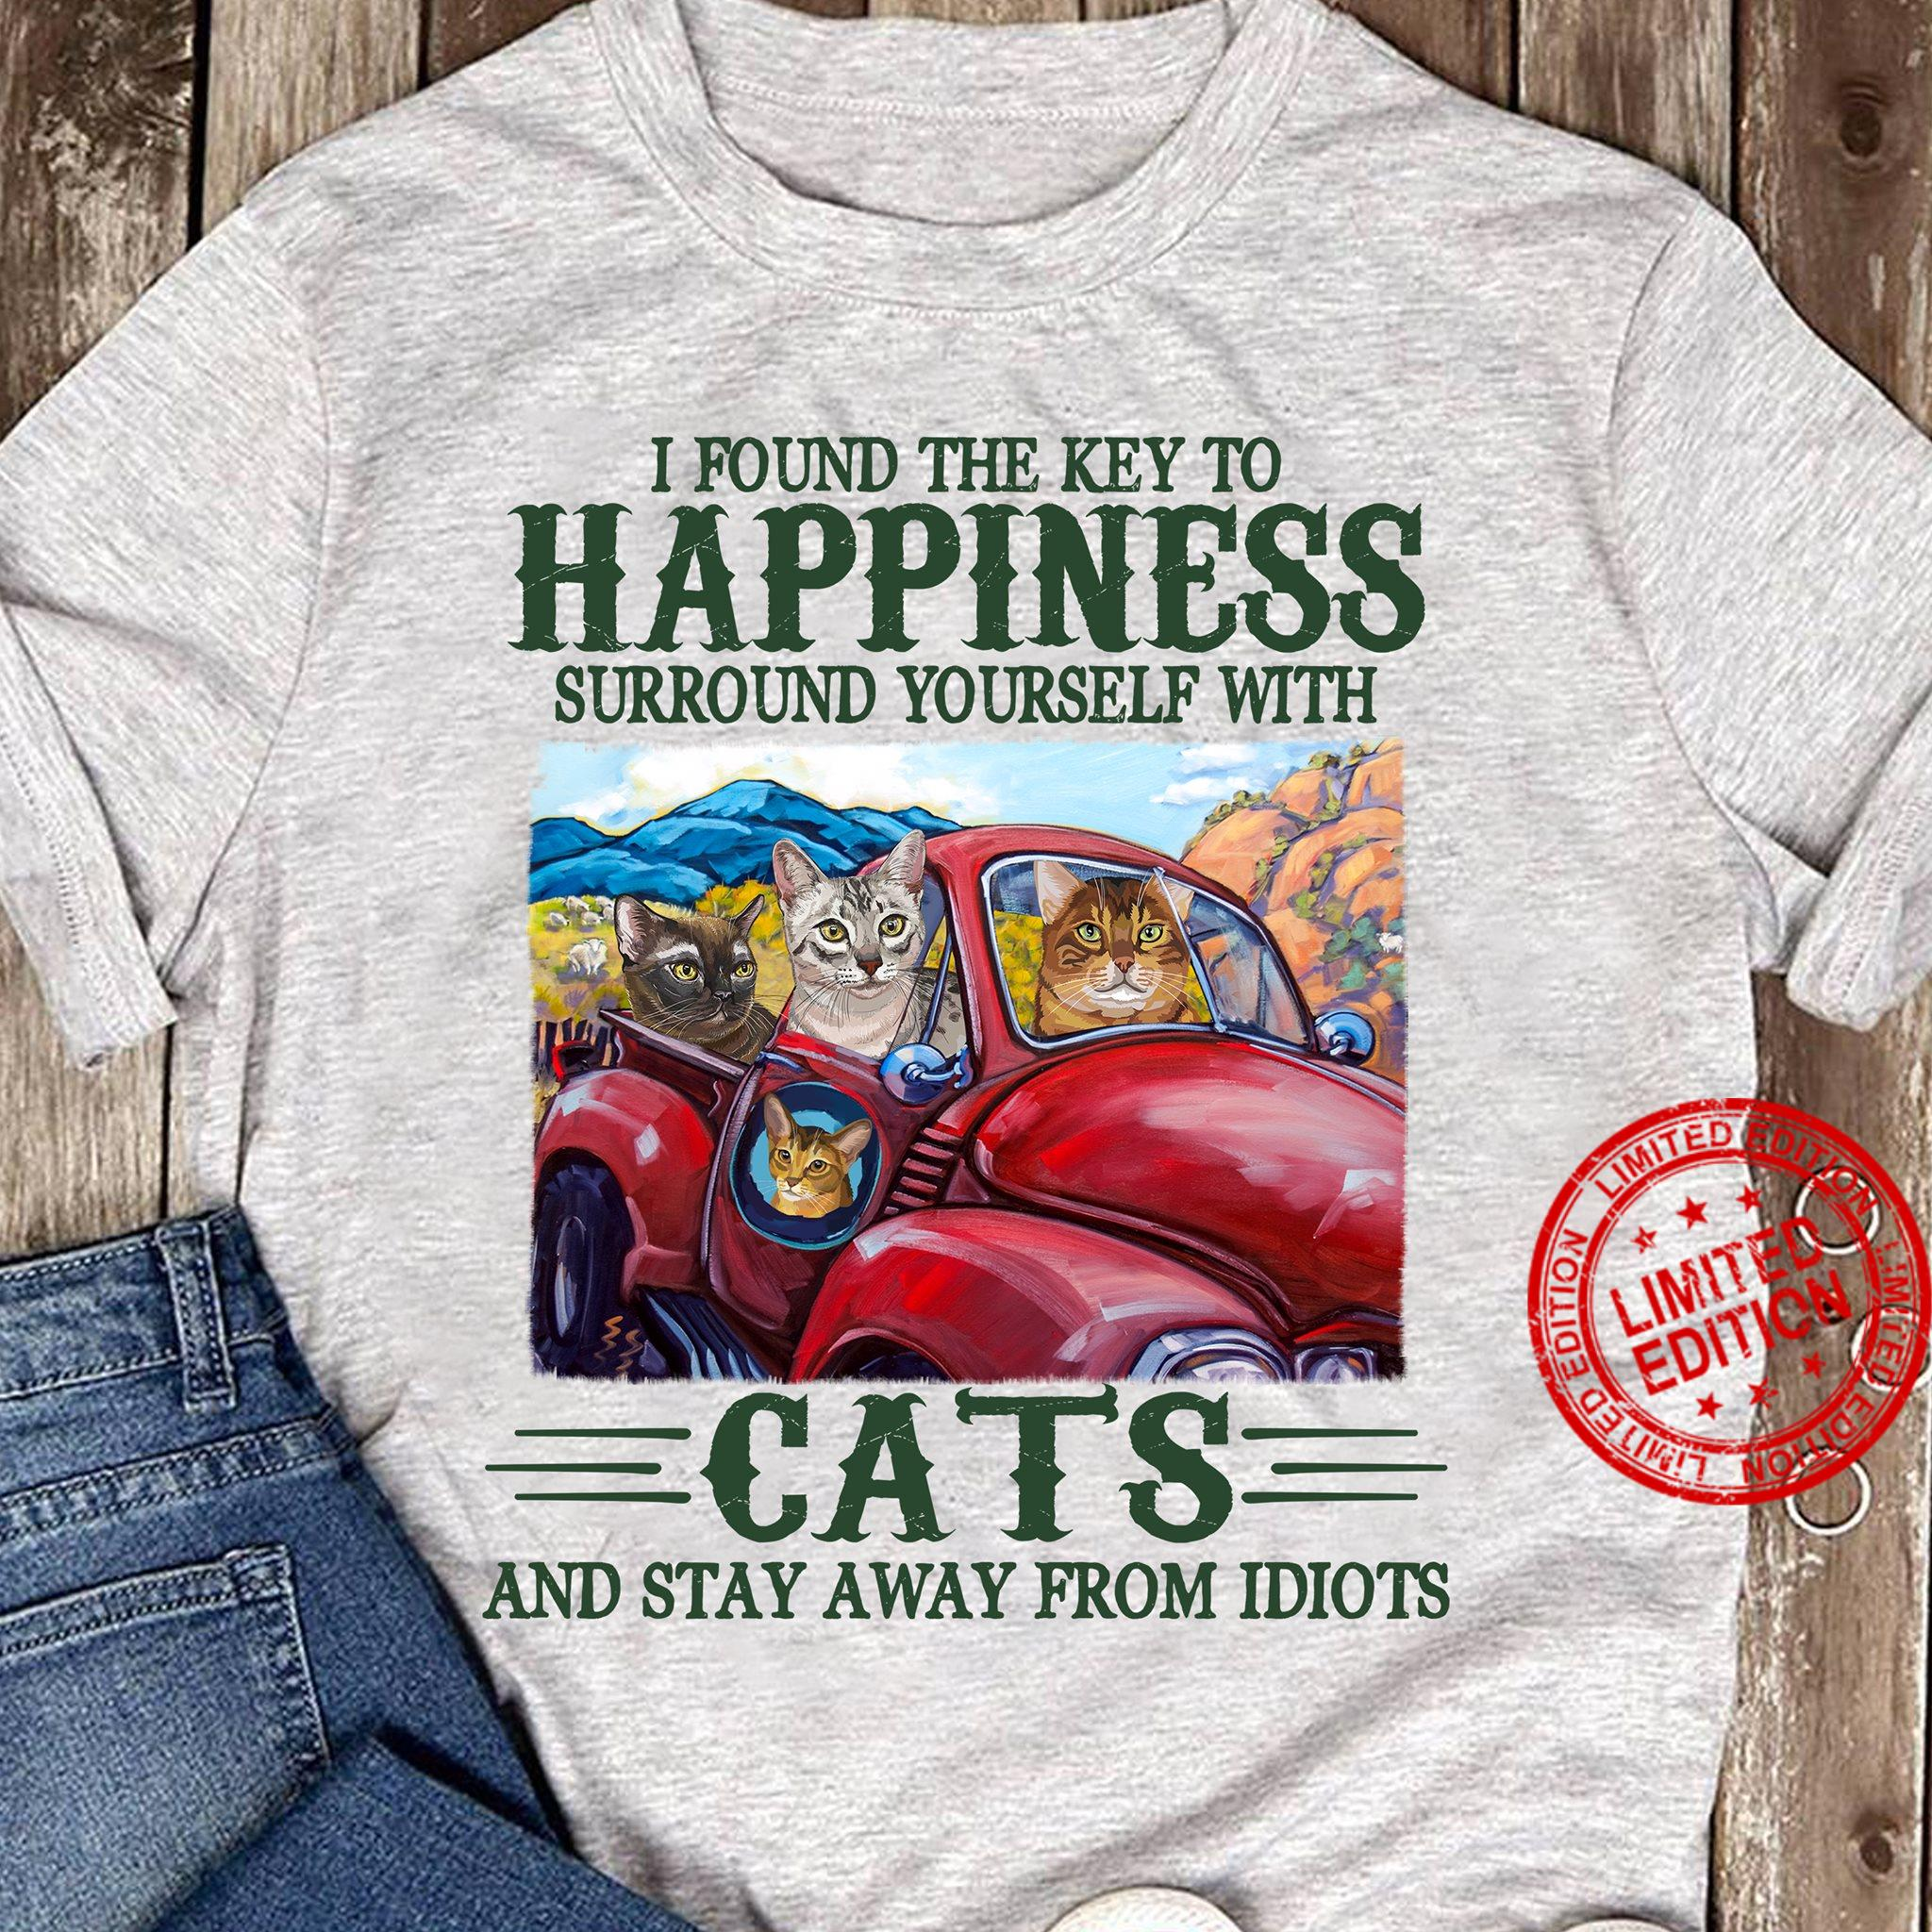 I Found The Key To Happiness Surround Yourself With Cat And Stay Away From Idiots Shirt.